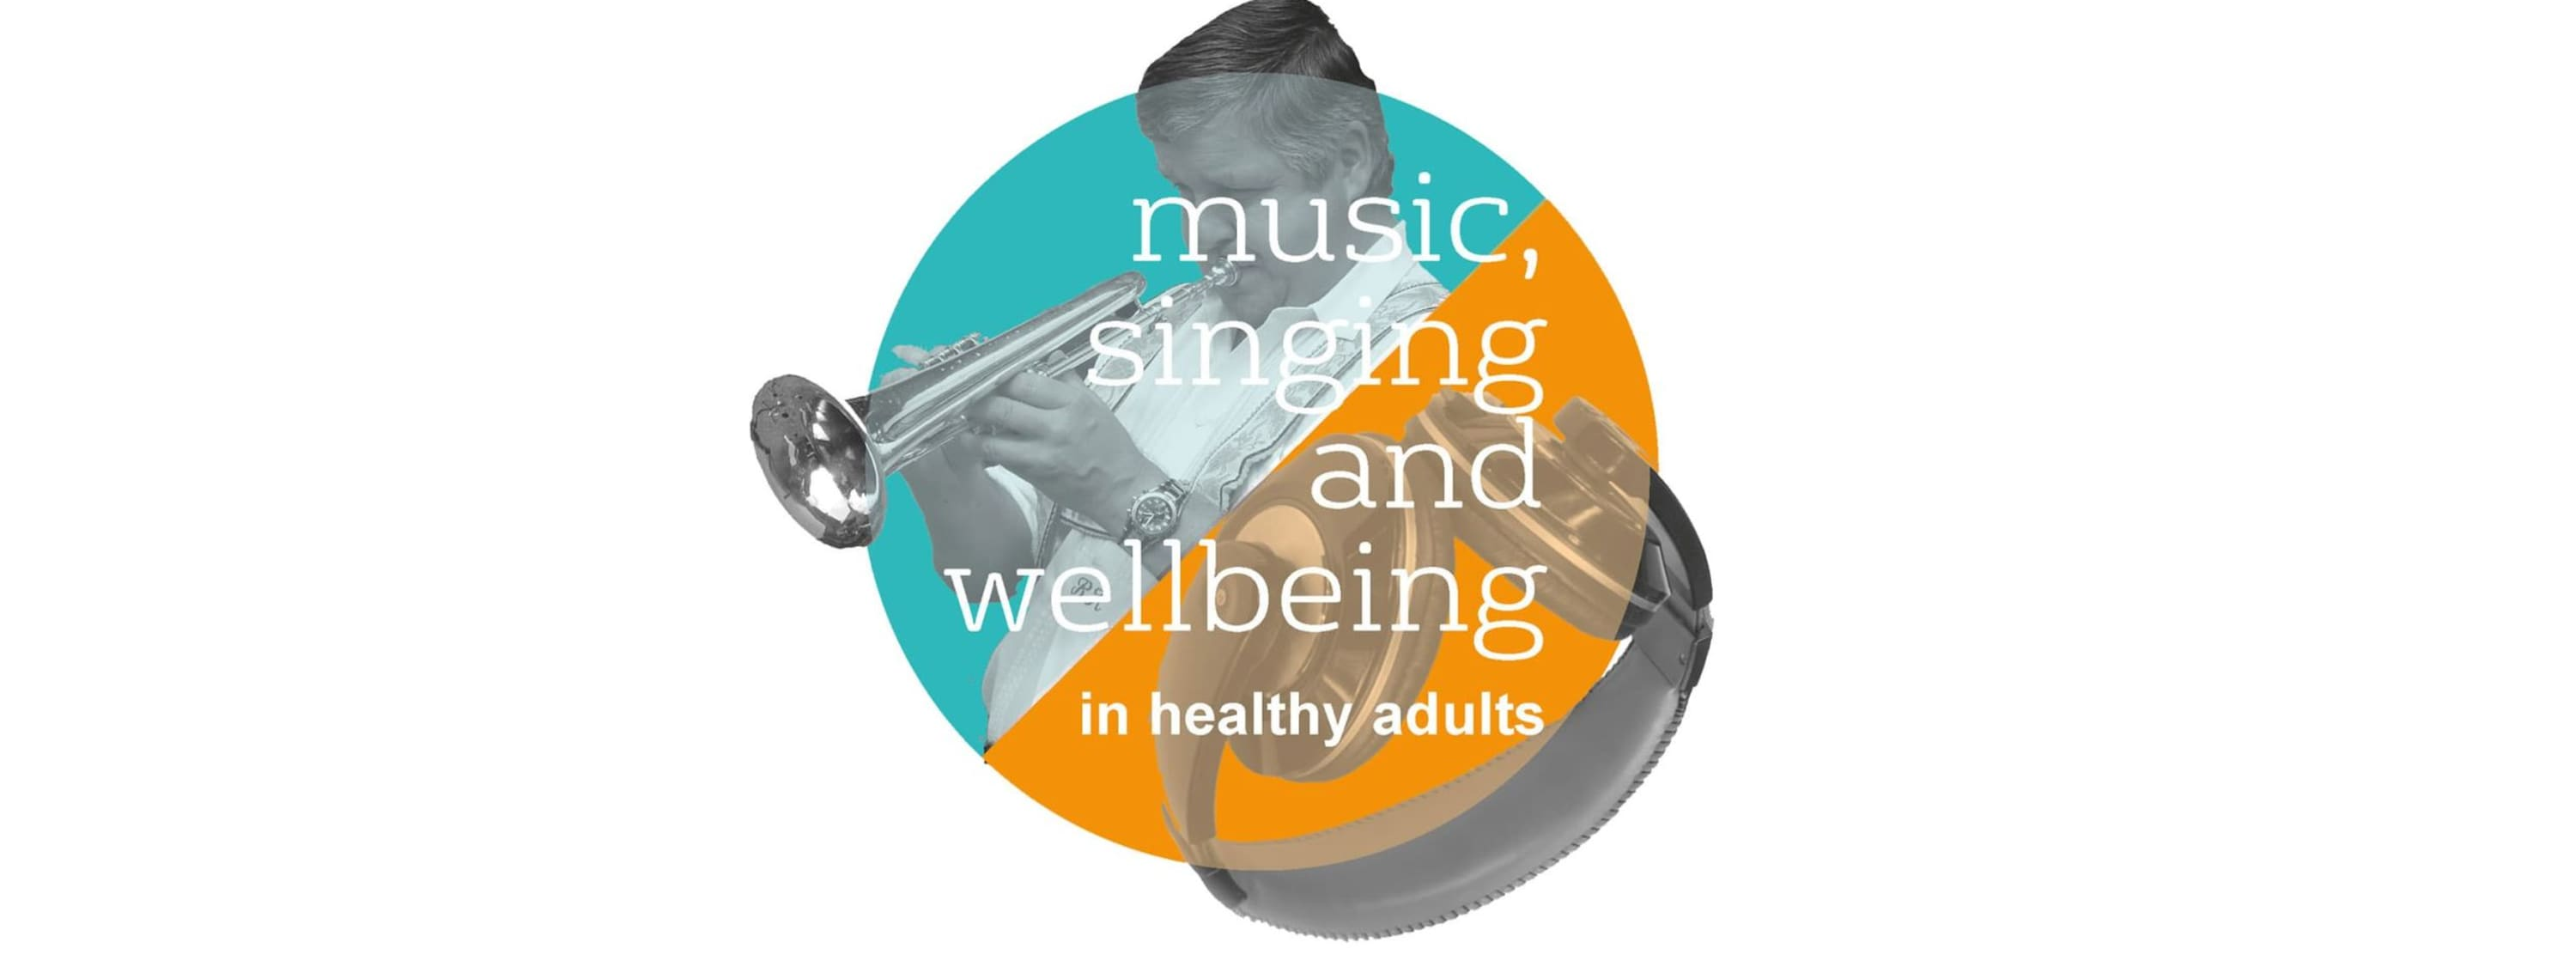 What Works Wellbeing Centre - Music, Singing and Wellbeing